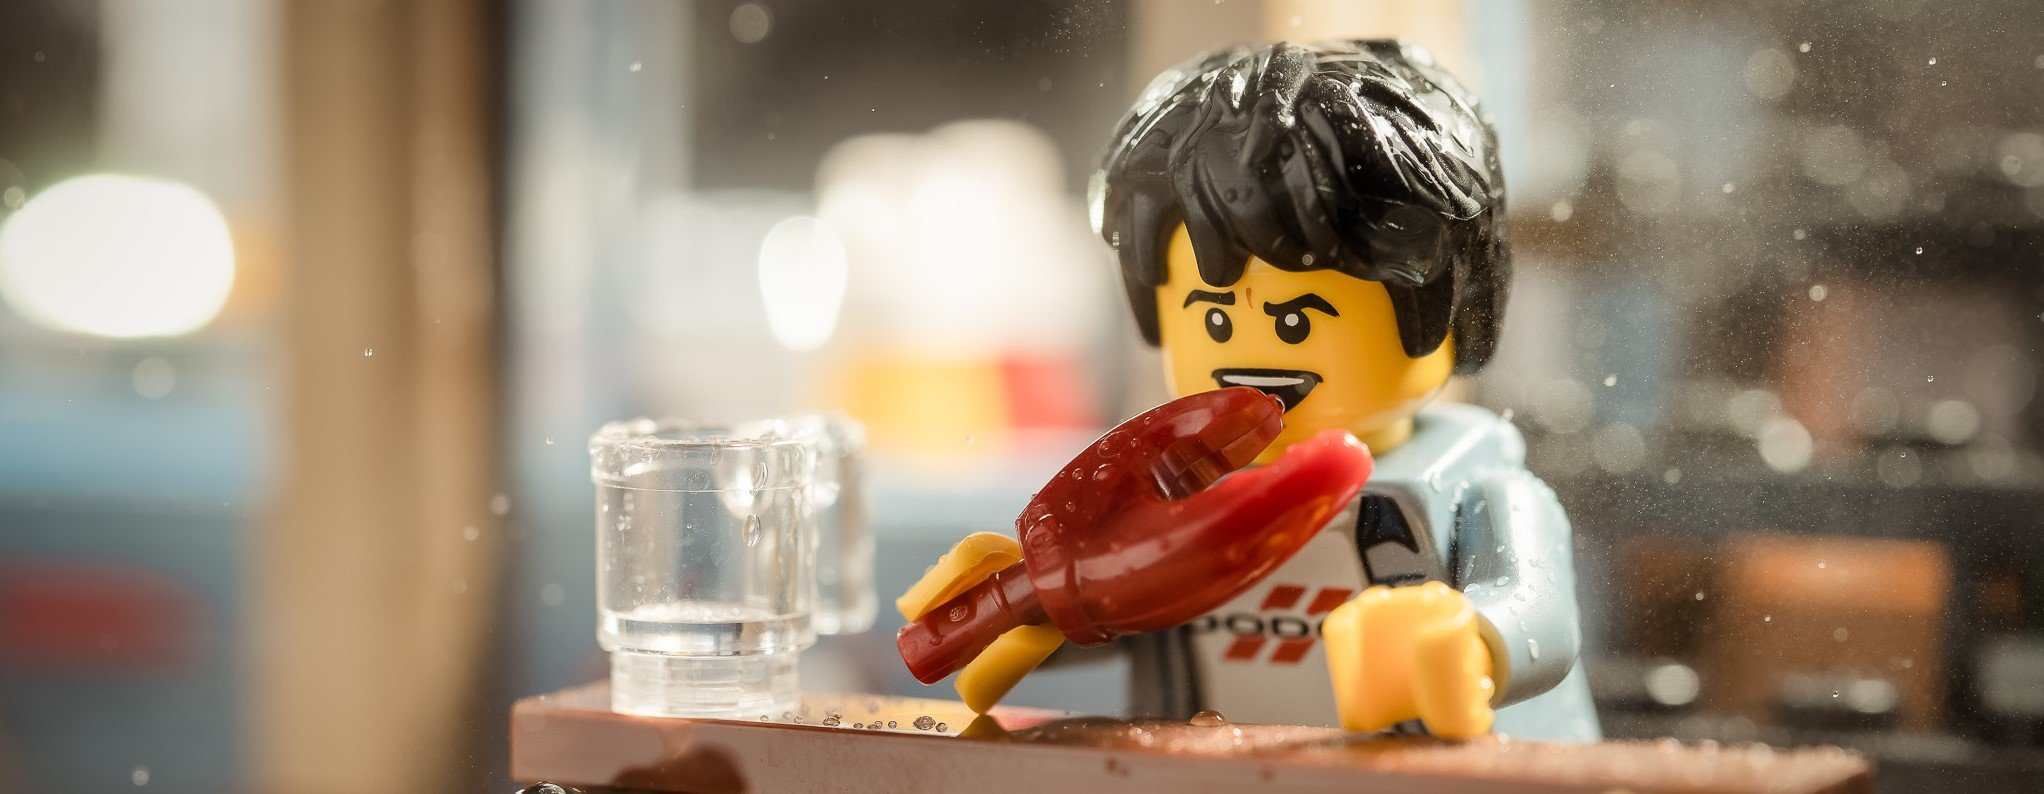 This LEGO follows OMAD. Should he?